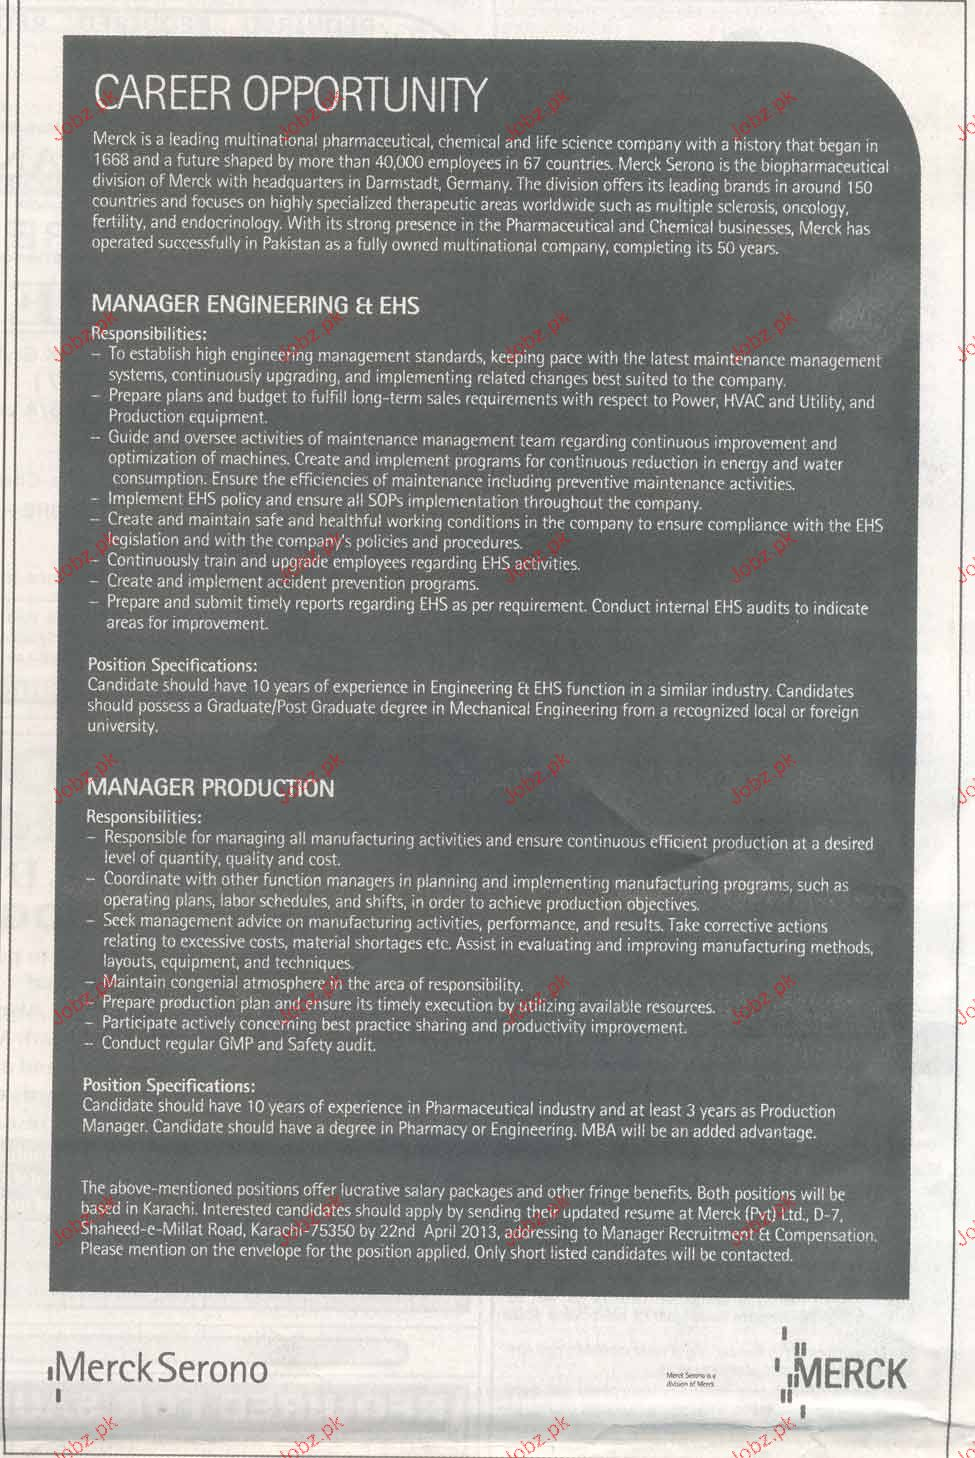 Manager Production and Manager Engineering Wanted